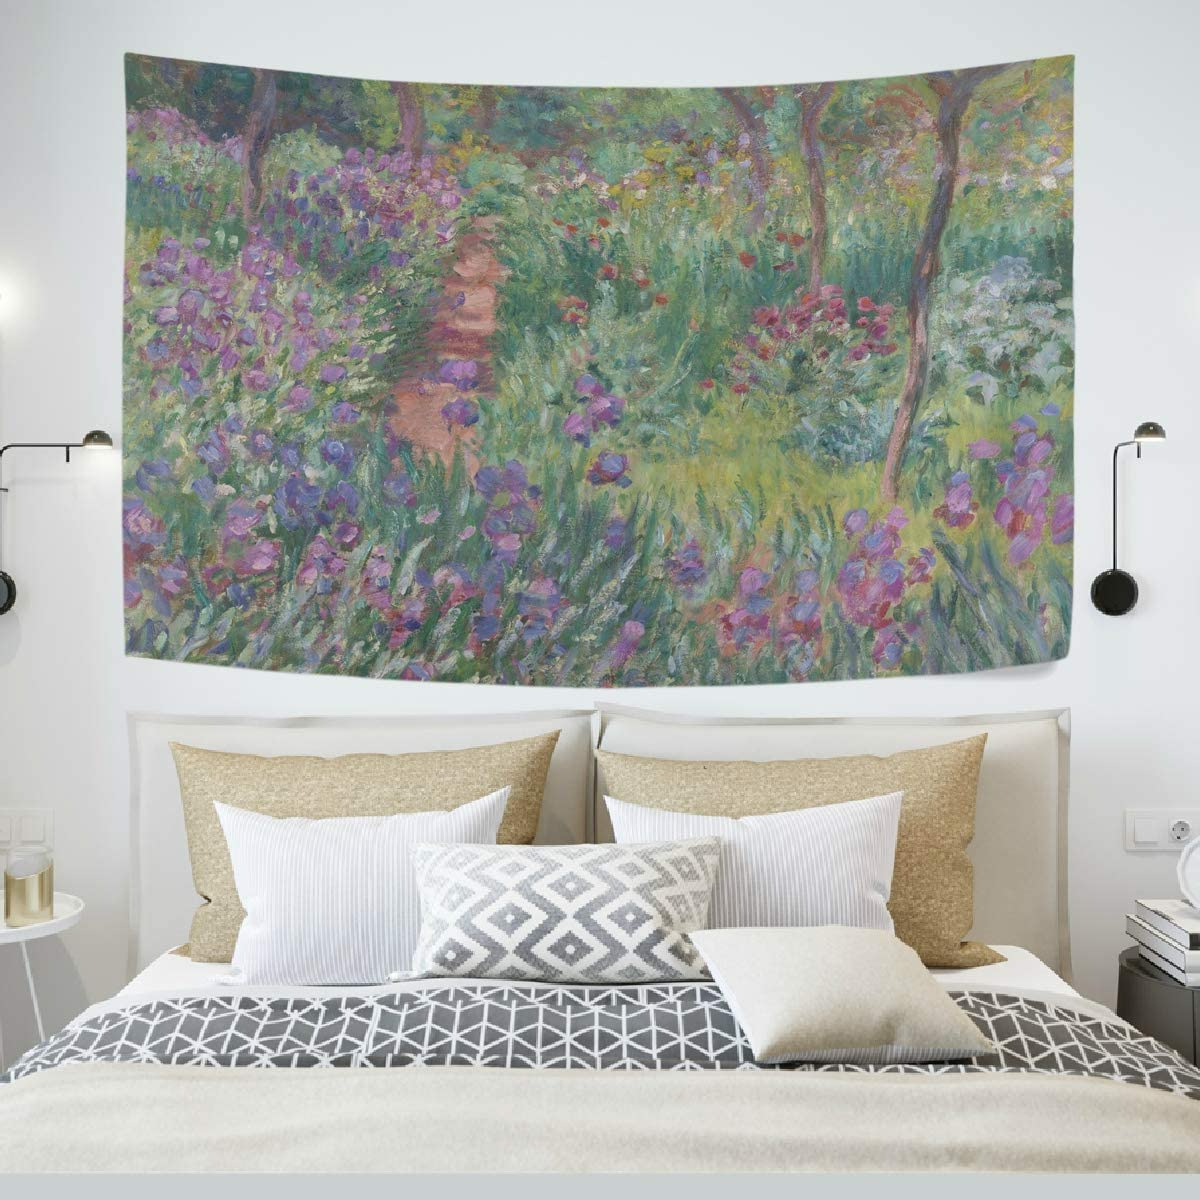 Famous Ahomy Tapestry Wall Hanging, Monet's Iris Garden At Giverny Bedspread Picnic Bedsheet Blanket Wall Art Tapestry 60 X 40 Inch Within Blended Fabric Irises Tapestries (View 20 of 20)